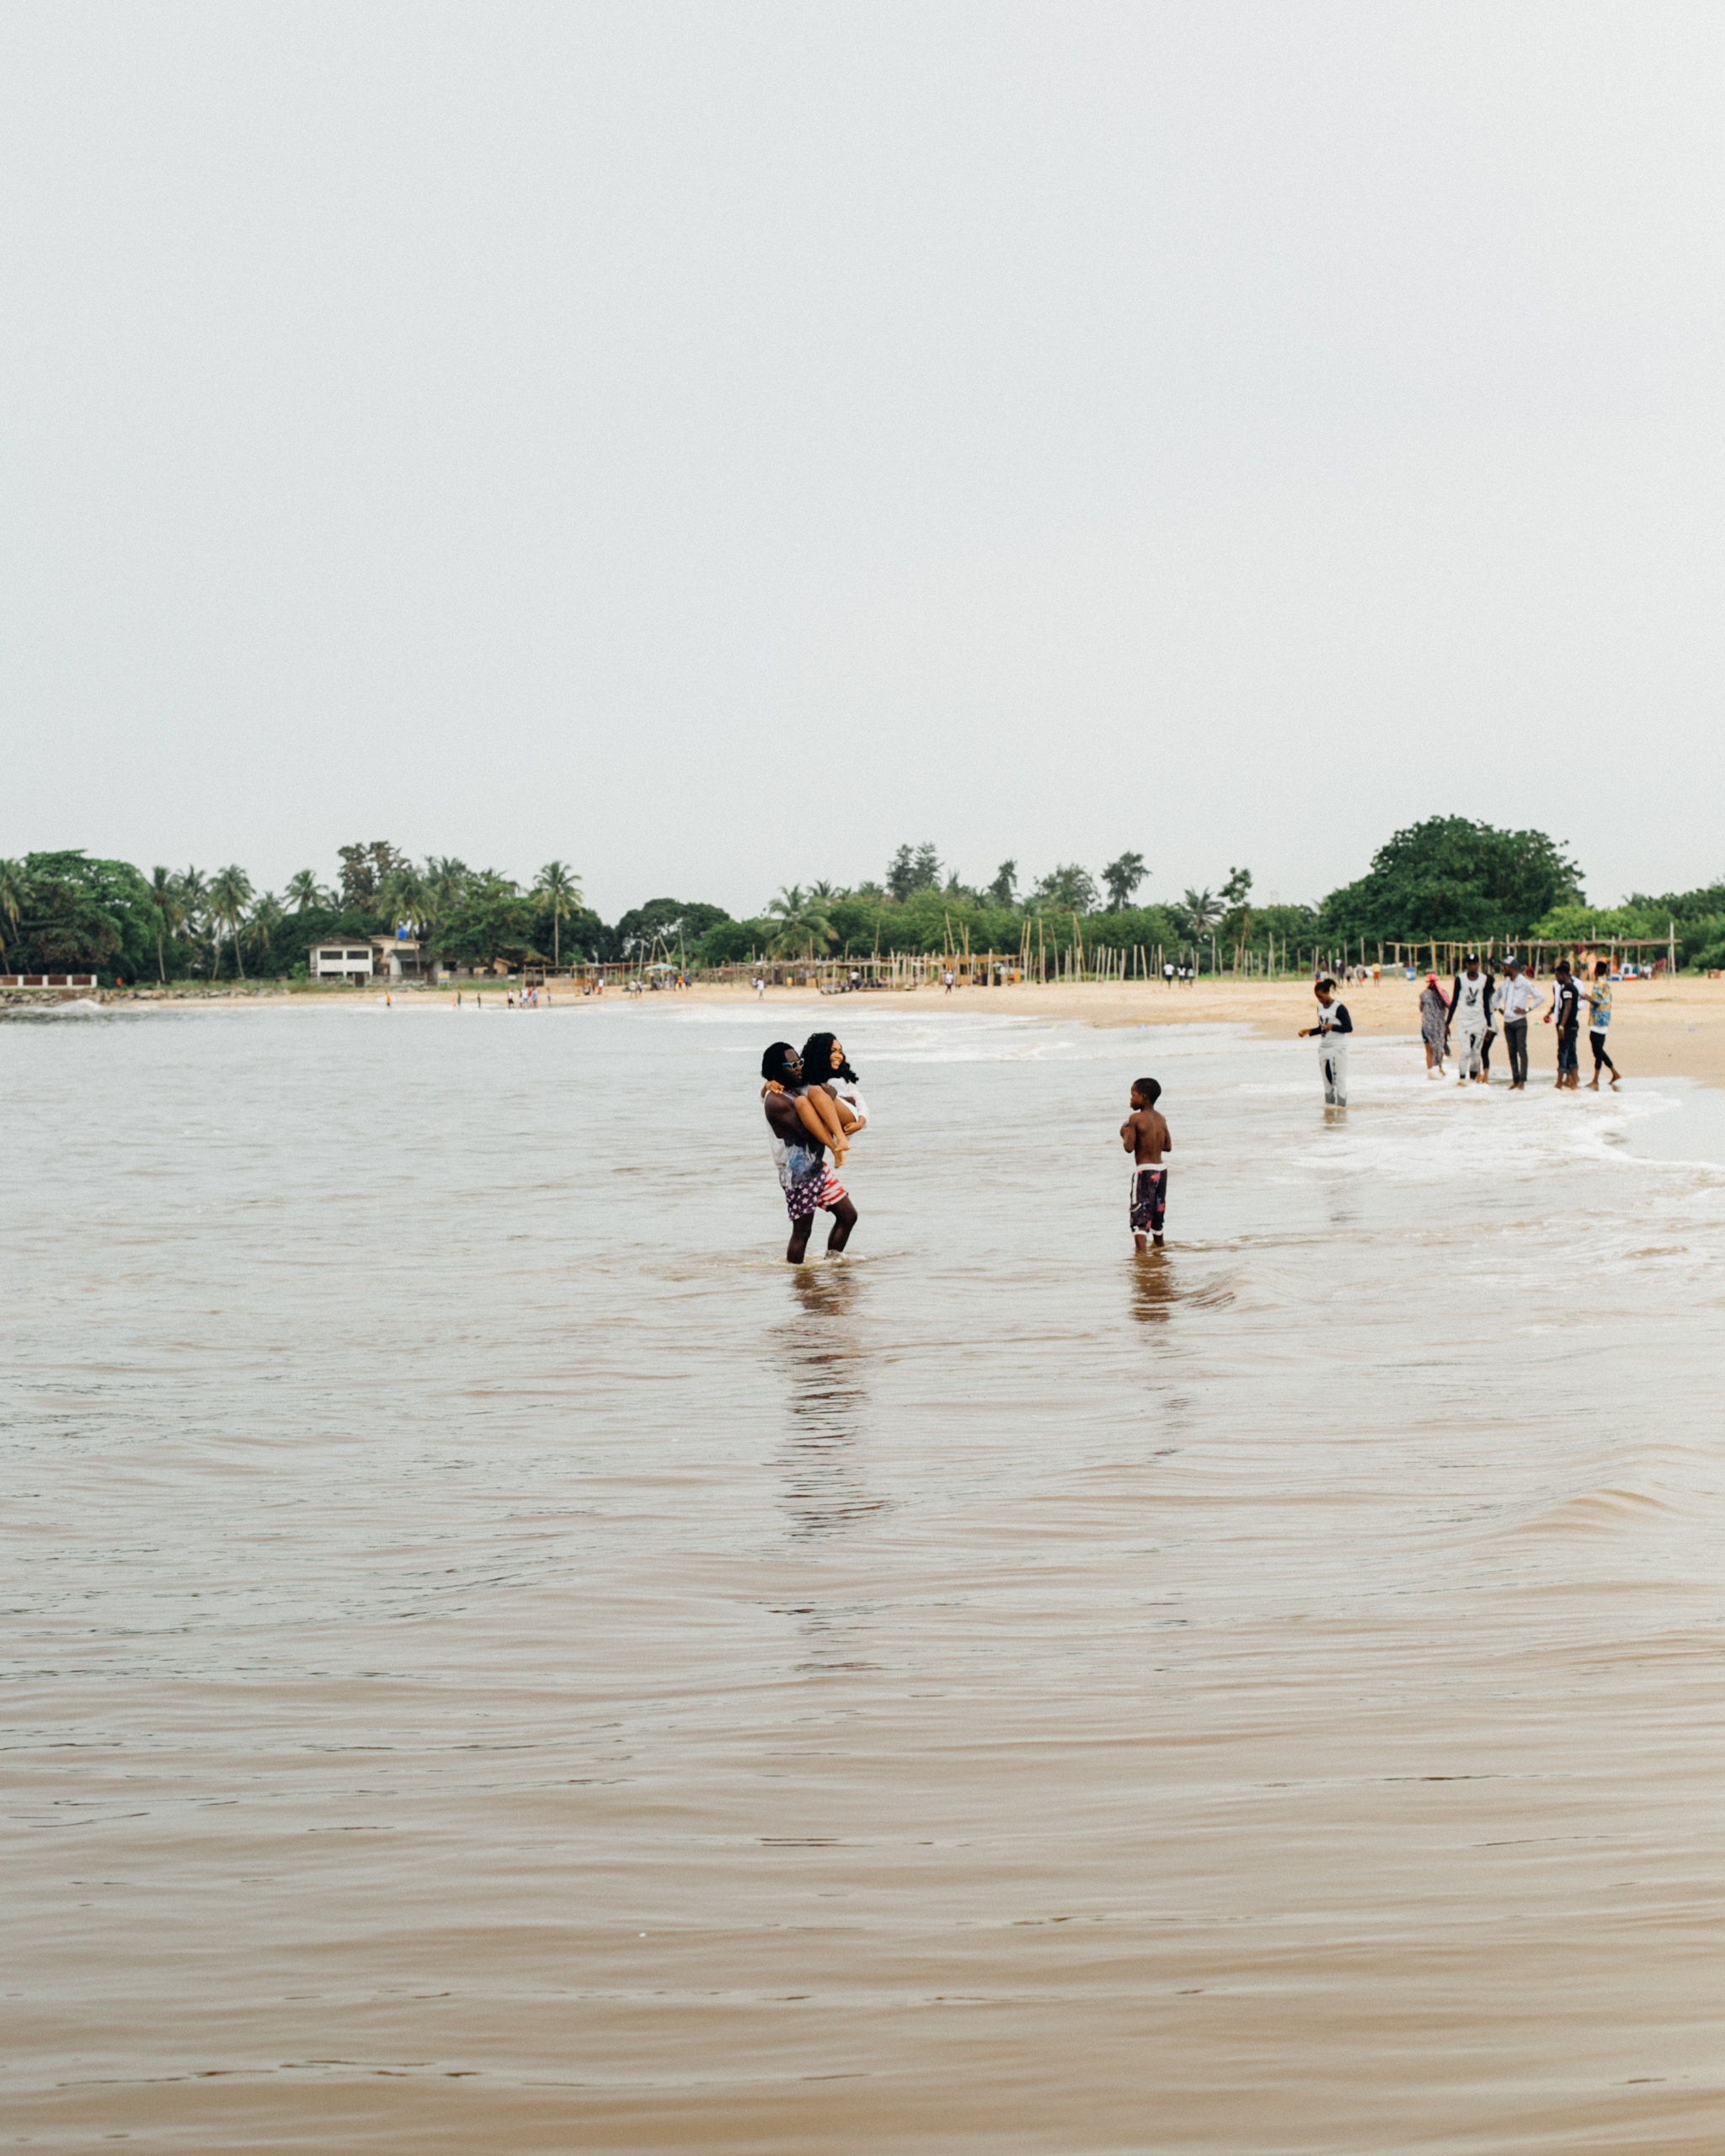 Lady being carried from the boat to the beach, Tarkwa bay